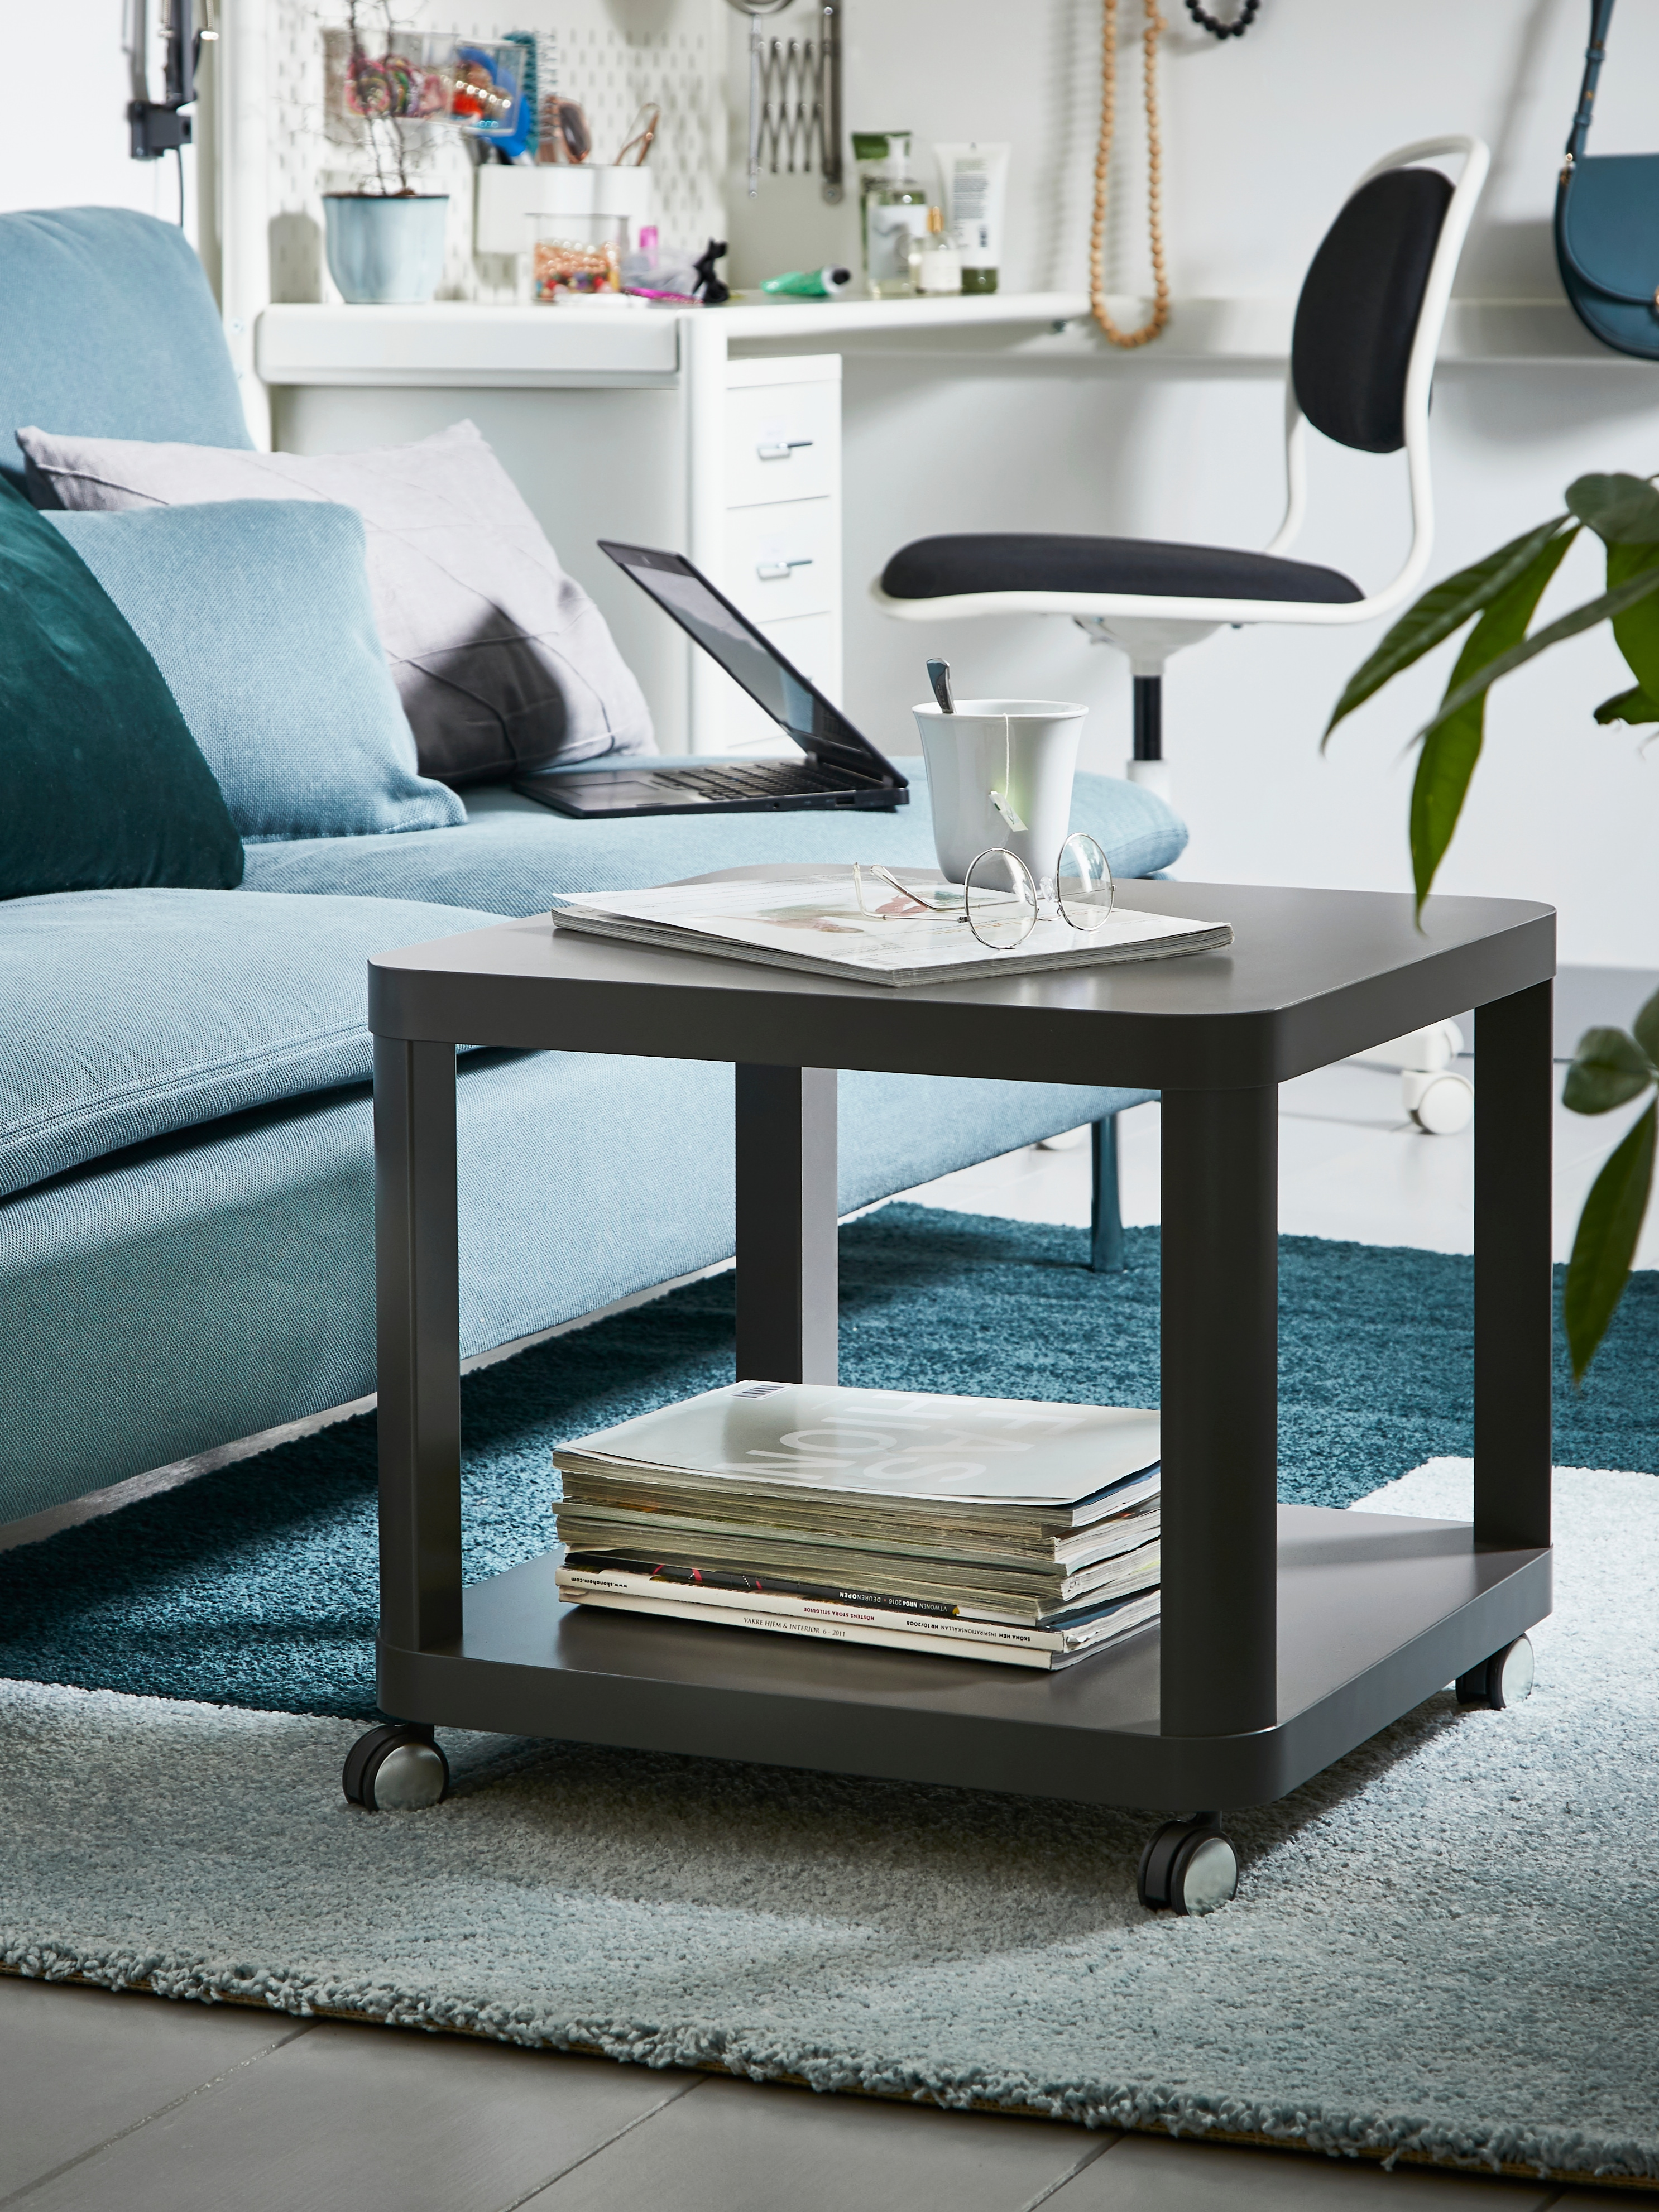 A square, grey TINGBY side table with castors that has a shelf underneath holding magazines on a ru beside a turquoise sofa.